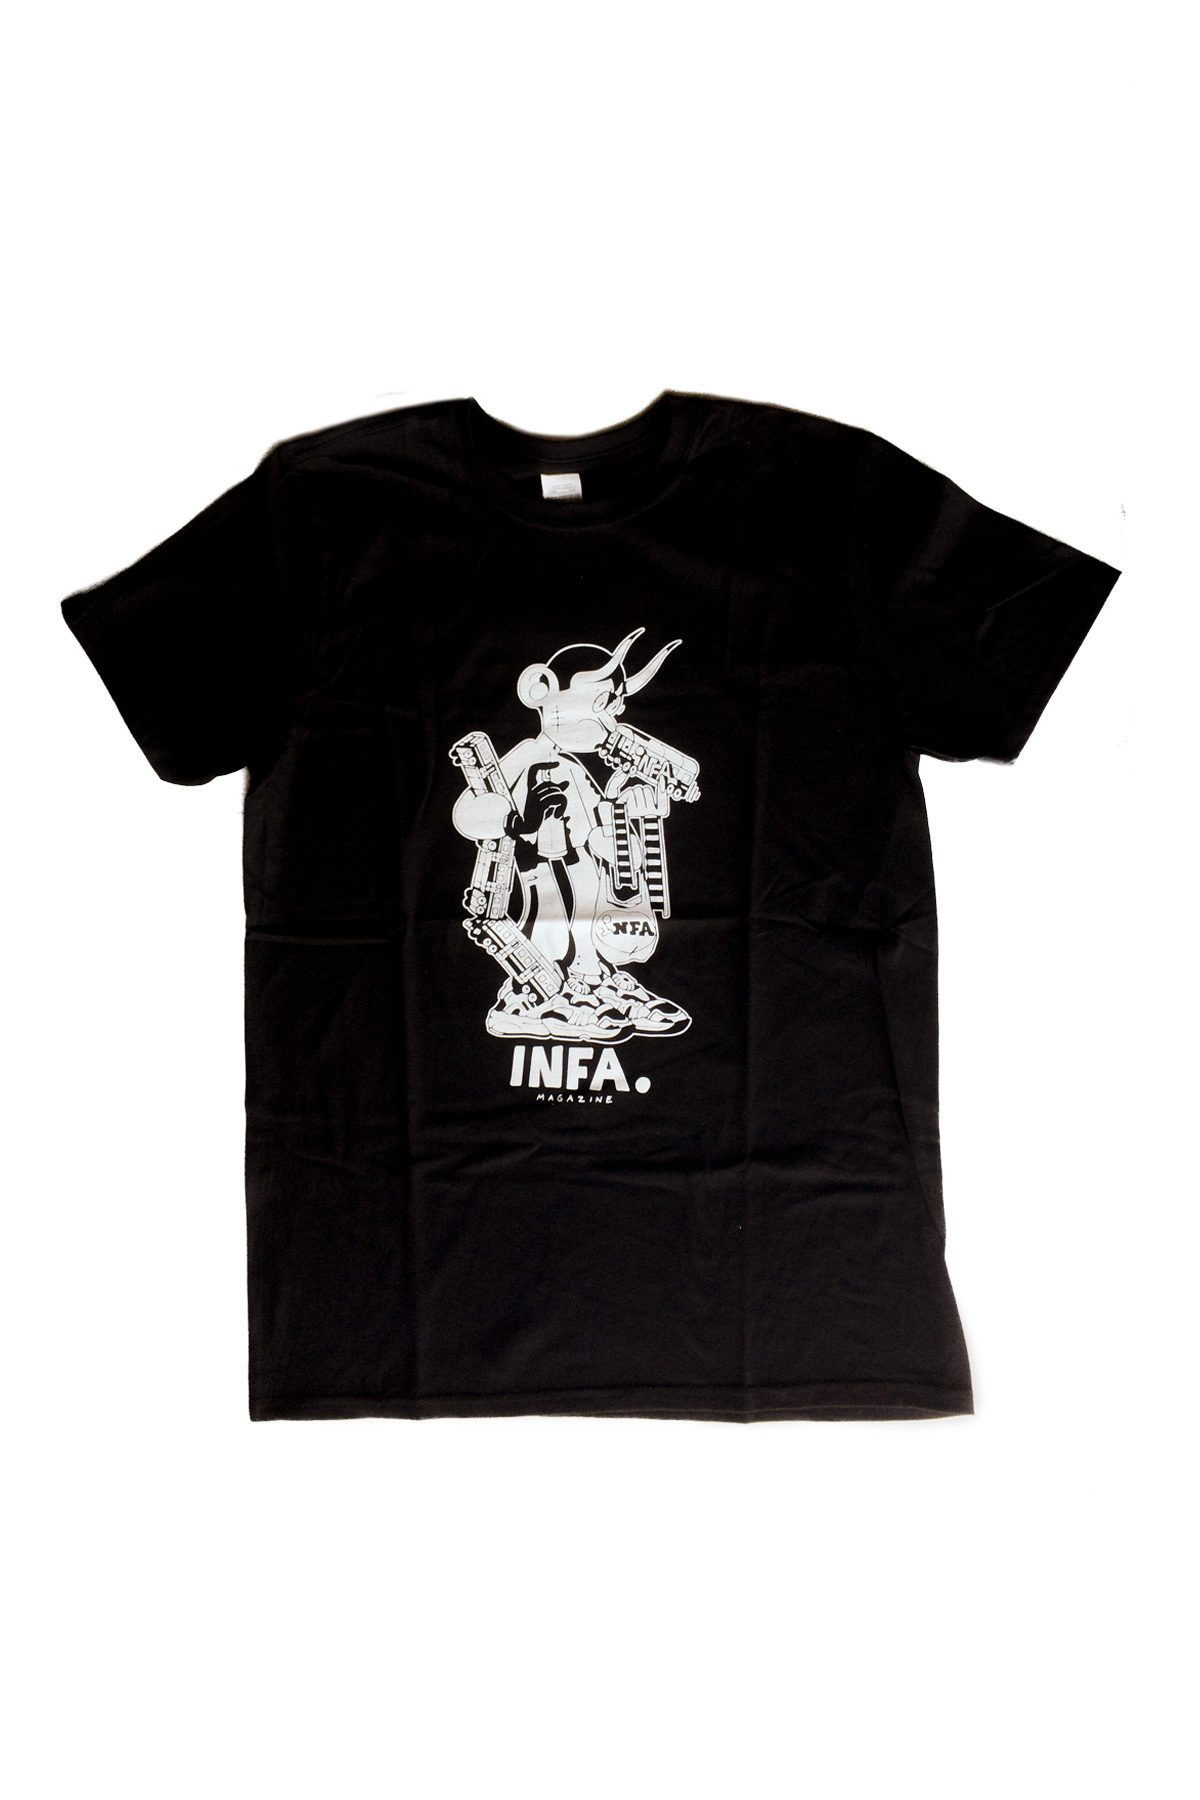 Infa by LUGOSIS T-Shirt